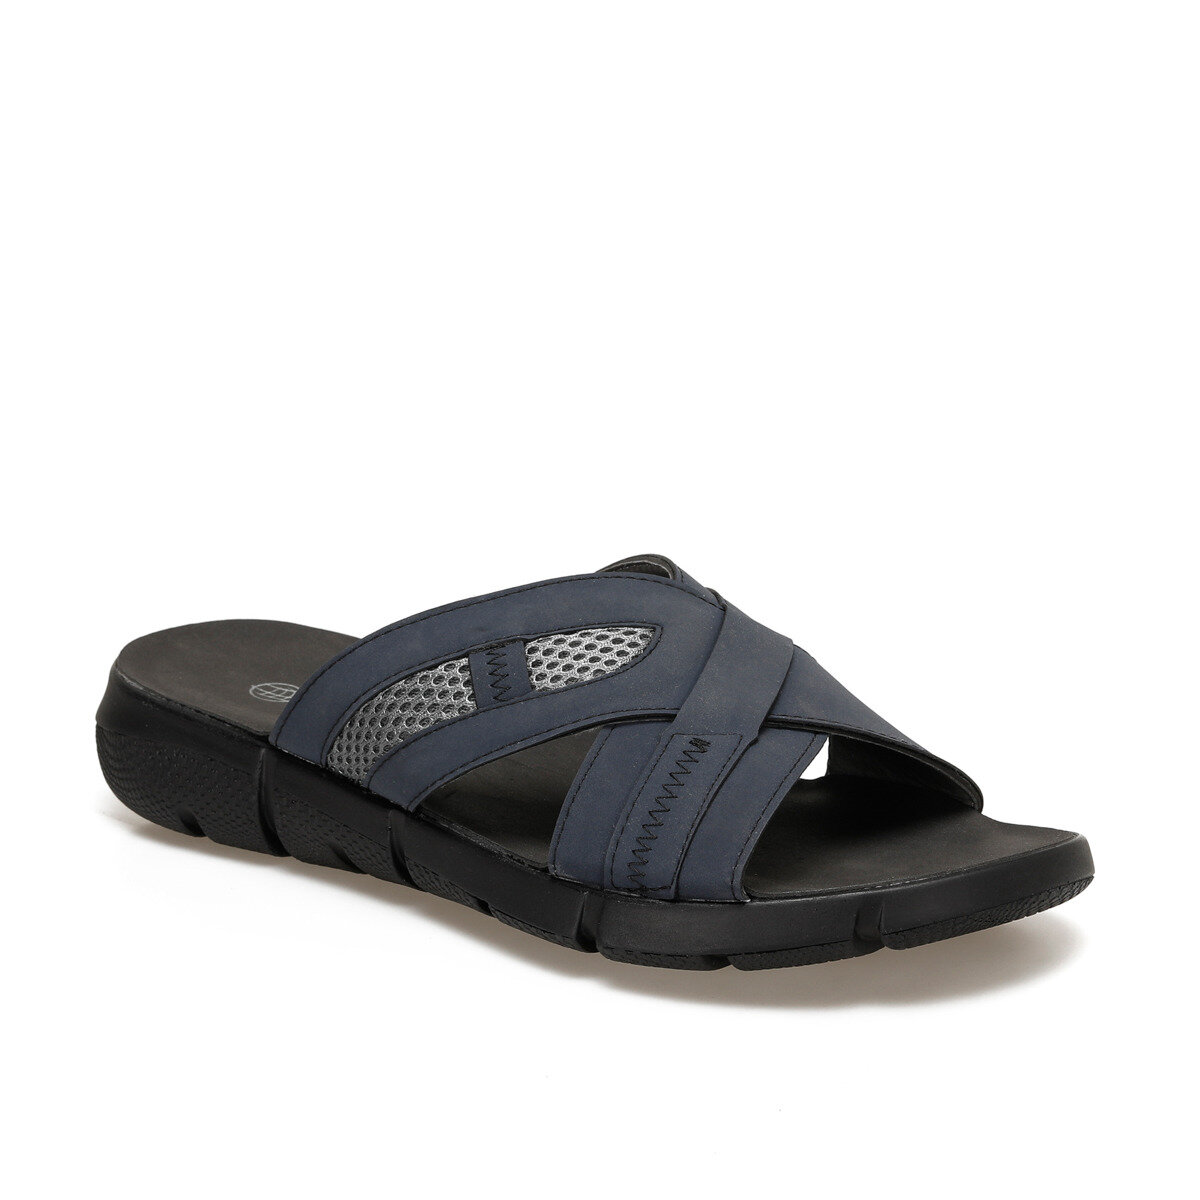 FLO ALS292 Navy Blue Male Slippers Panama Club